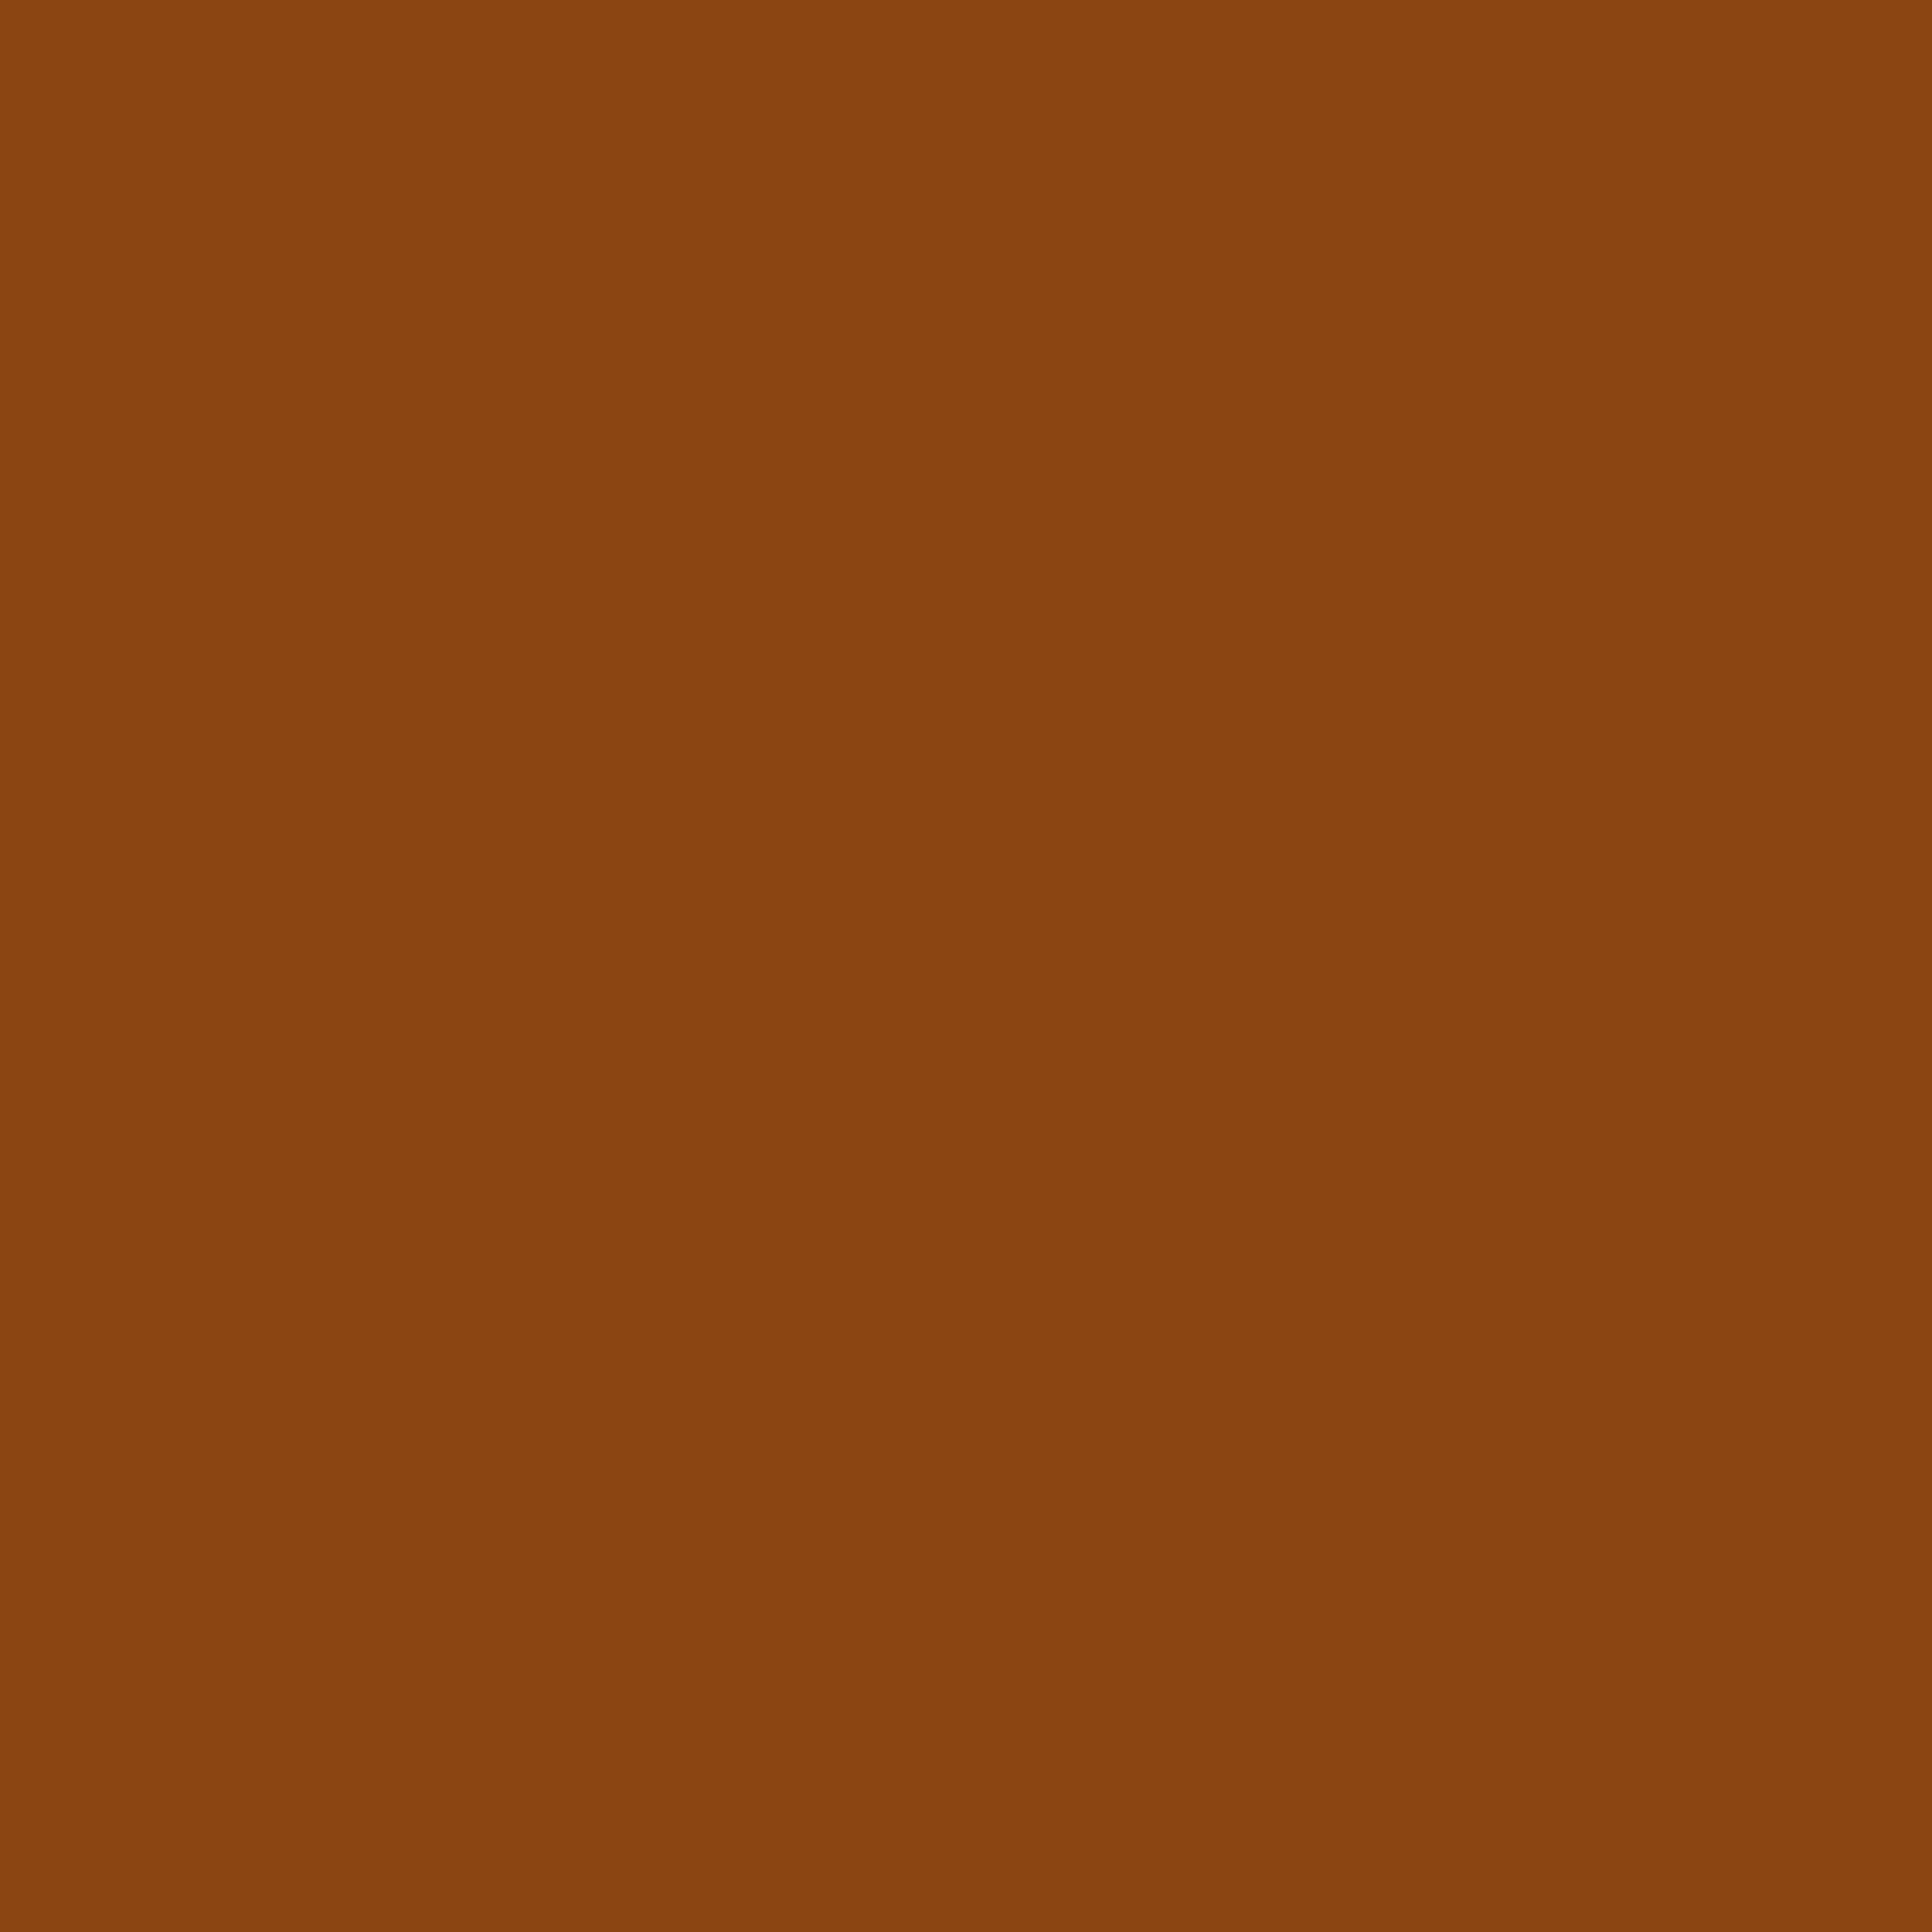 3600x3600 Saddle Brown Solid Color Background